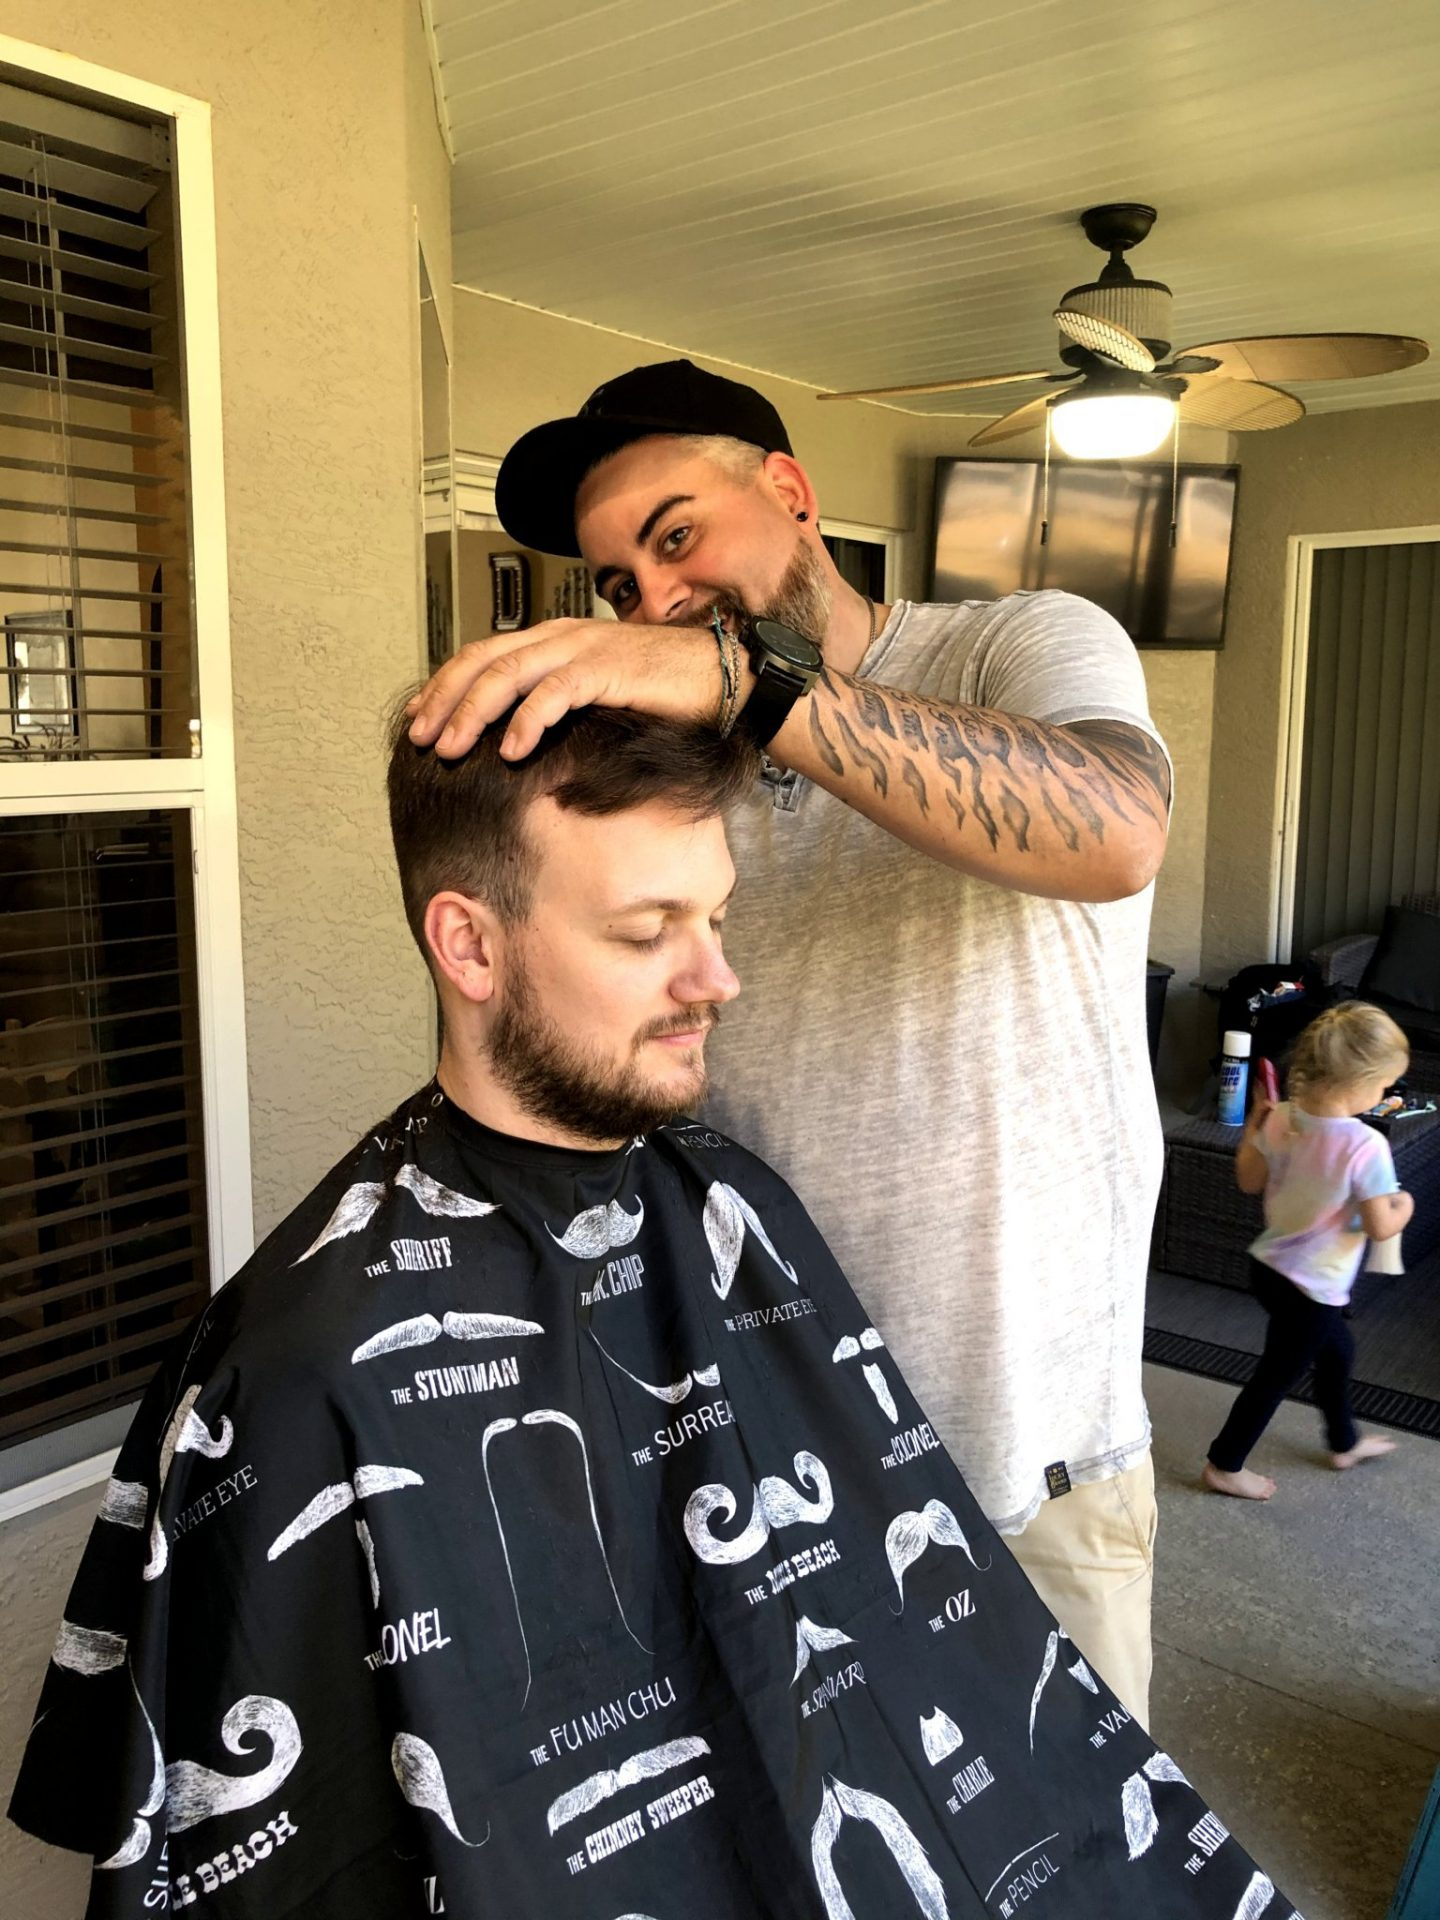 Brent demonstrating his hair cutting skills on Taylor